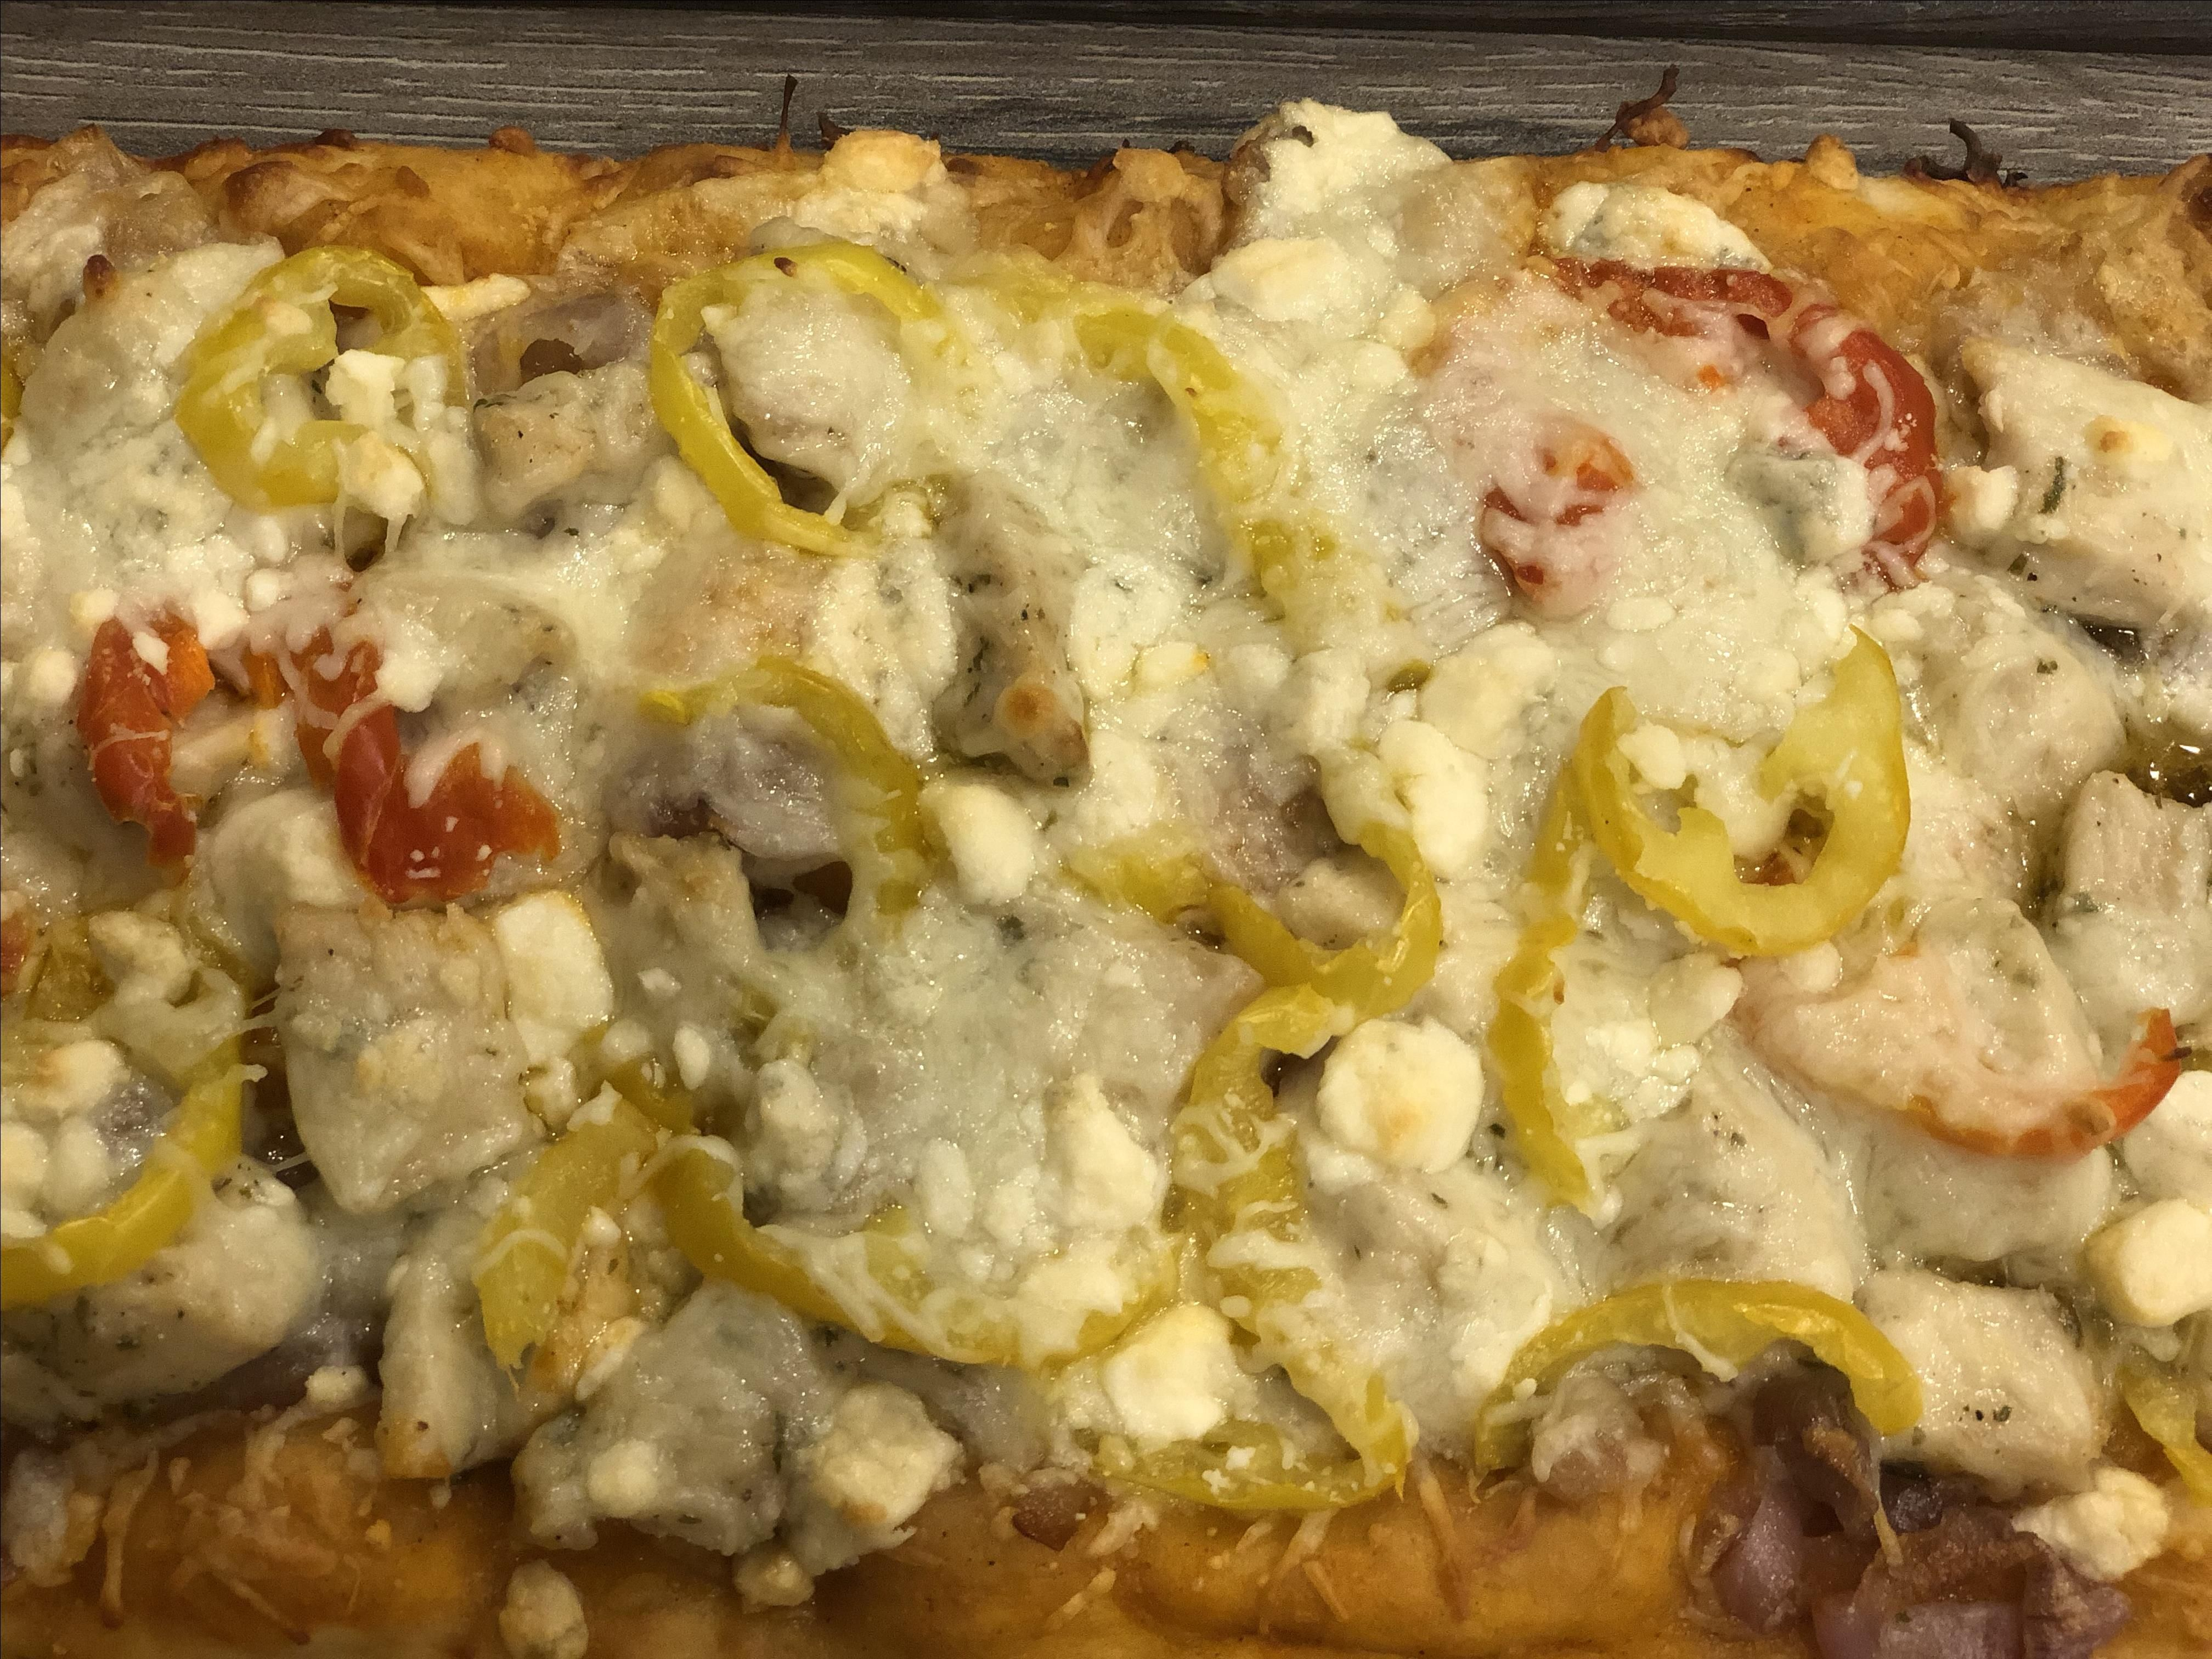 Buffalo Chicken Flatbread Pizza Recipe In 2020 Recipes With Banana Peppers Buffalo Chicken Flatbread Pizza Chicken Flatbread Pizza